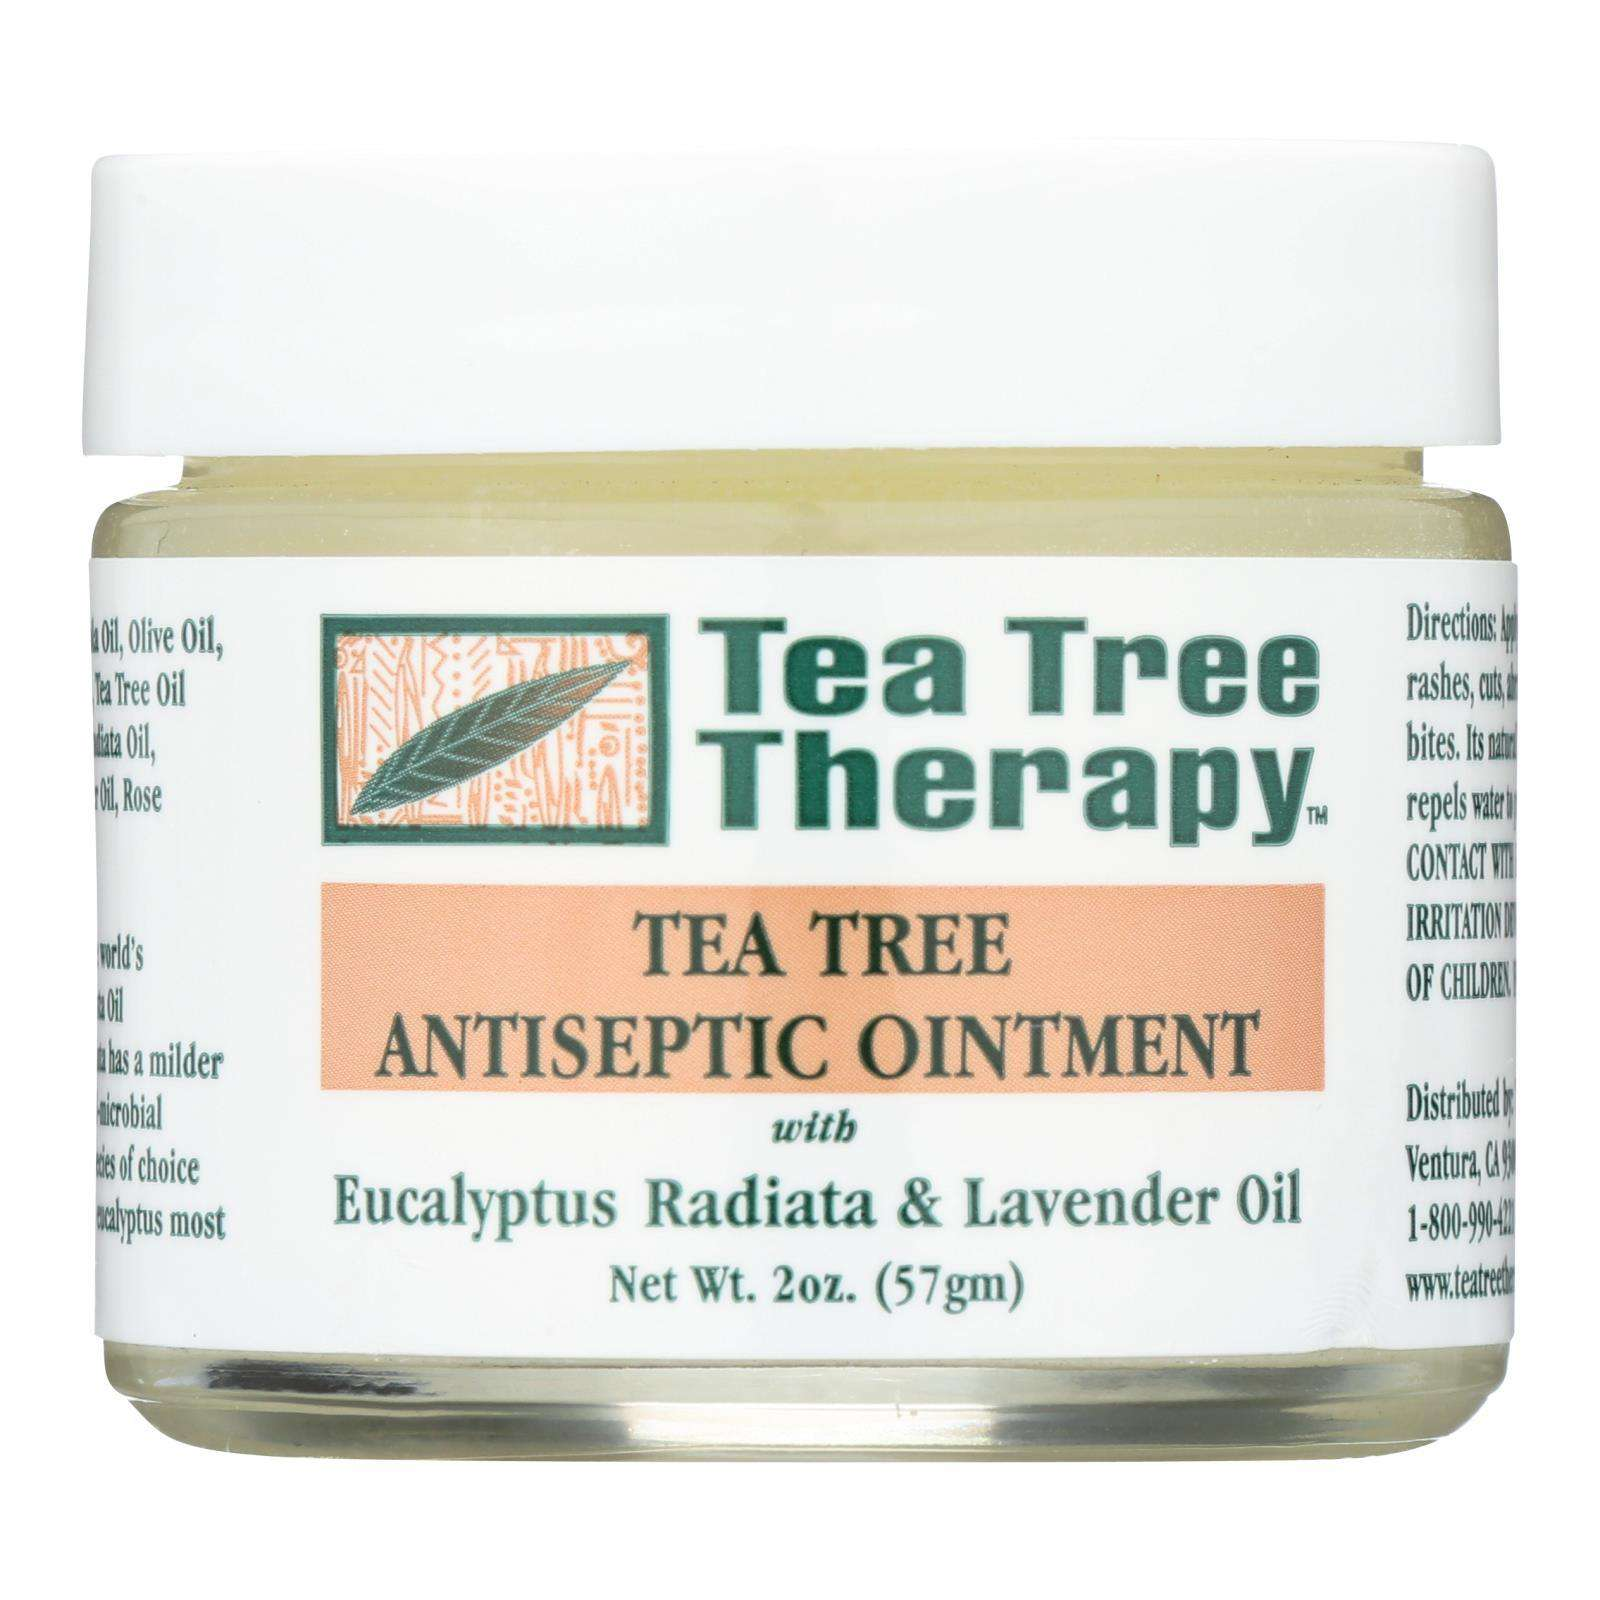 Tea Tree Therapy Antiseptic Ointment Eucalyptus Australiana And Lavender Oil - 2 Oz - BeeGreen